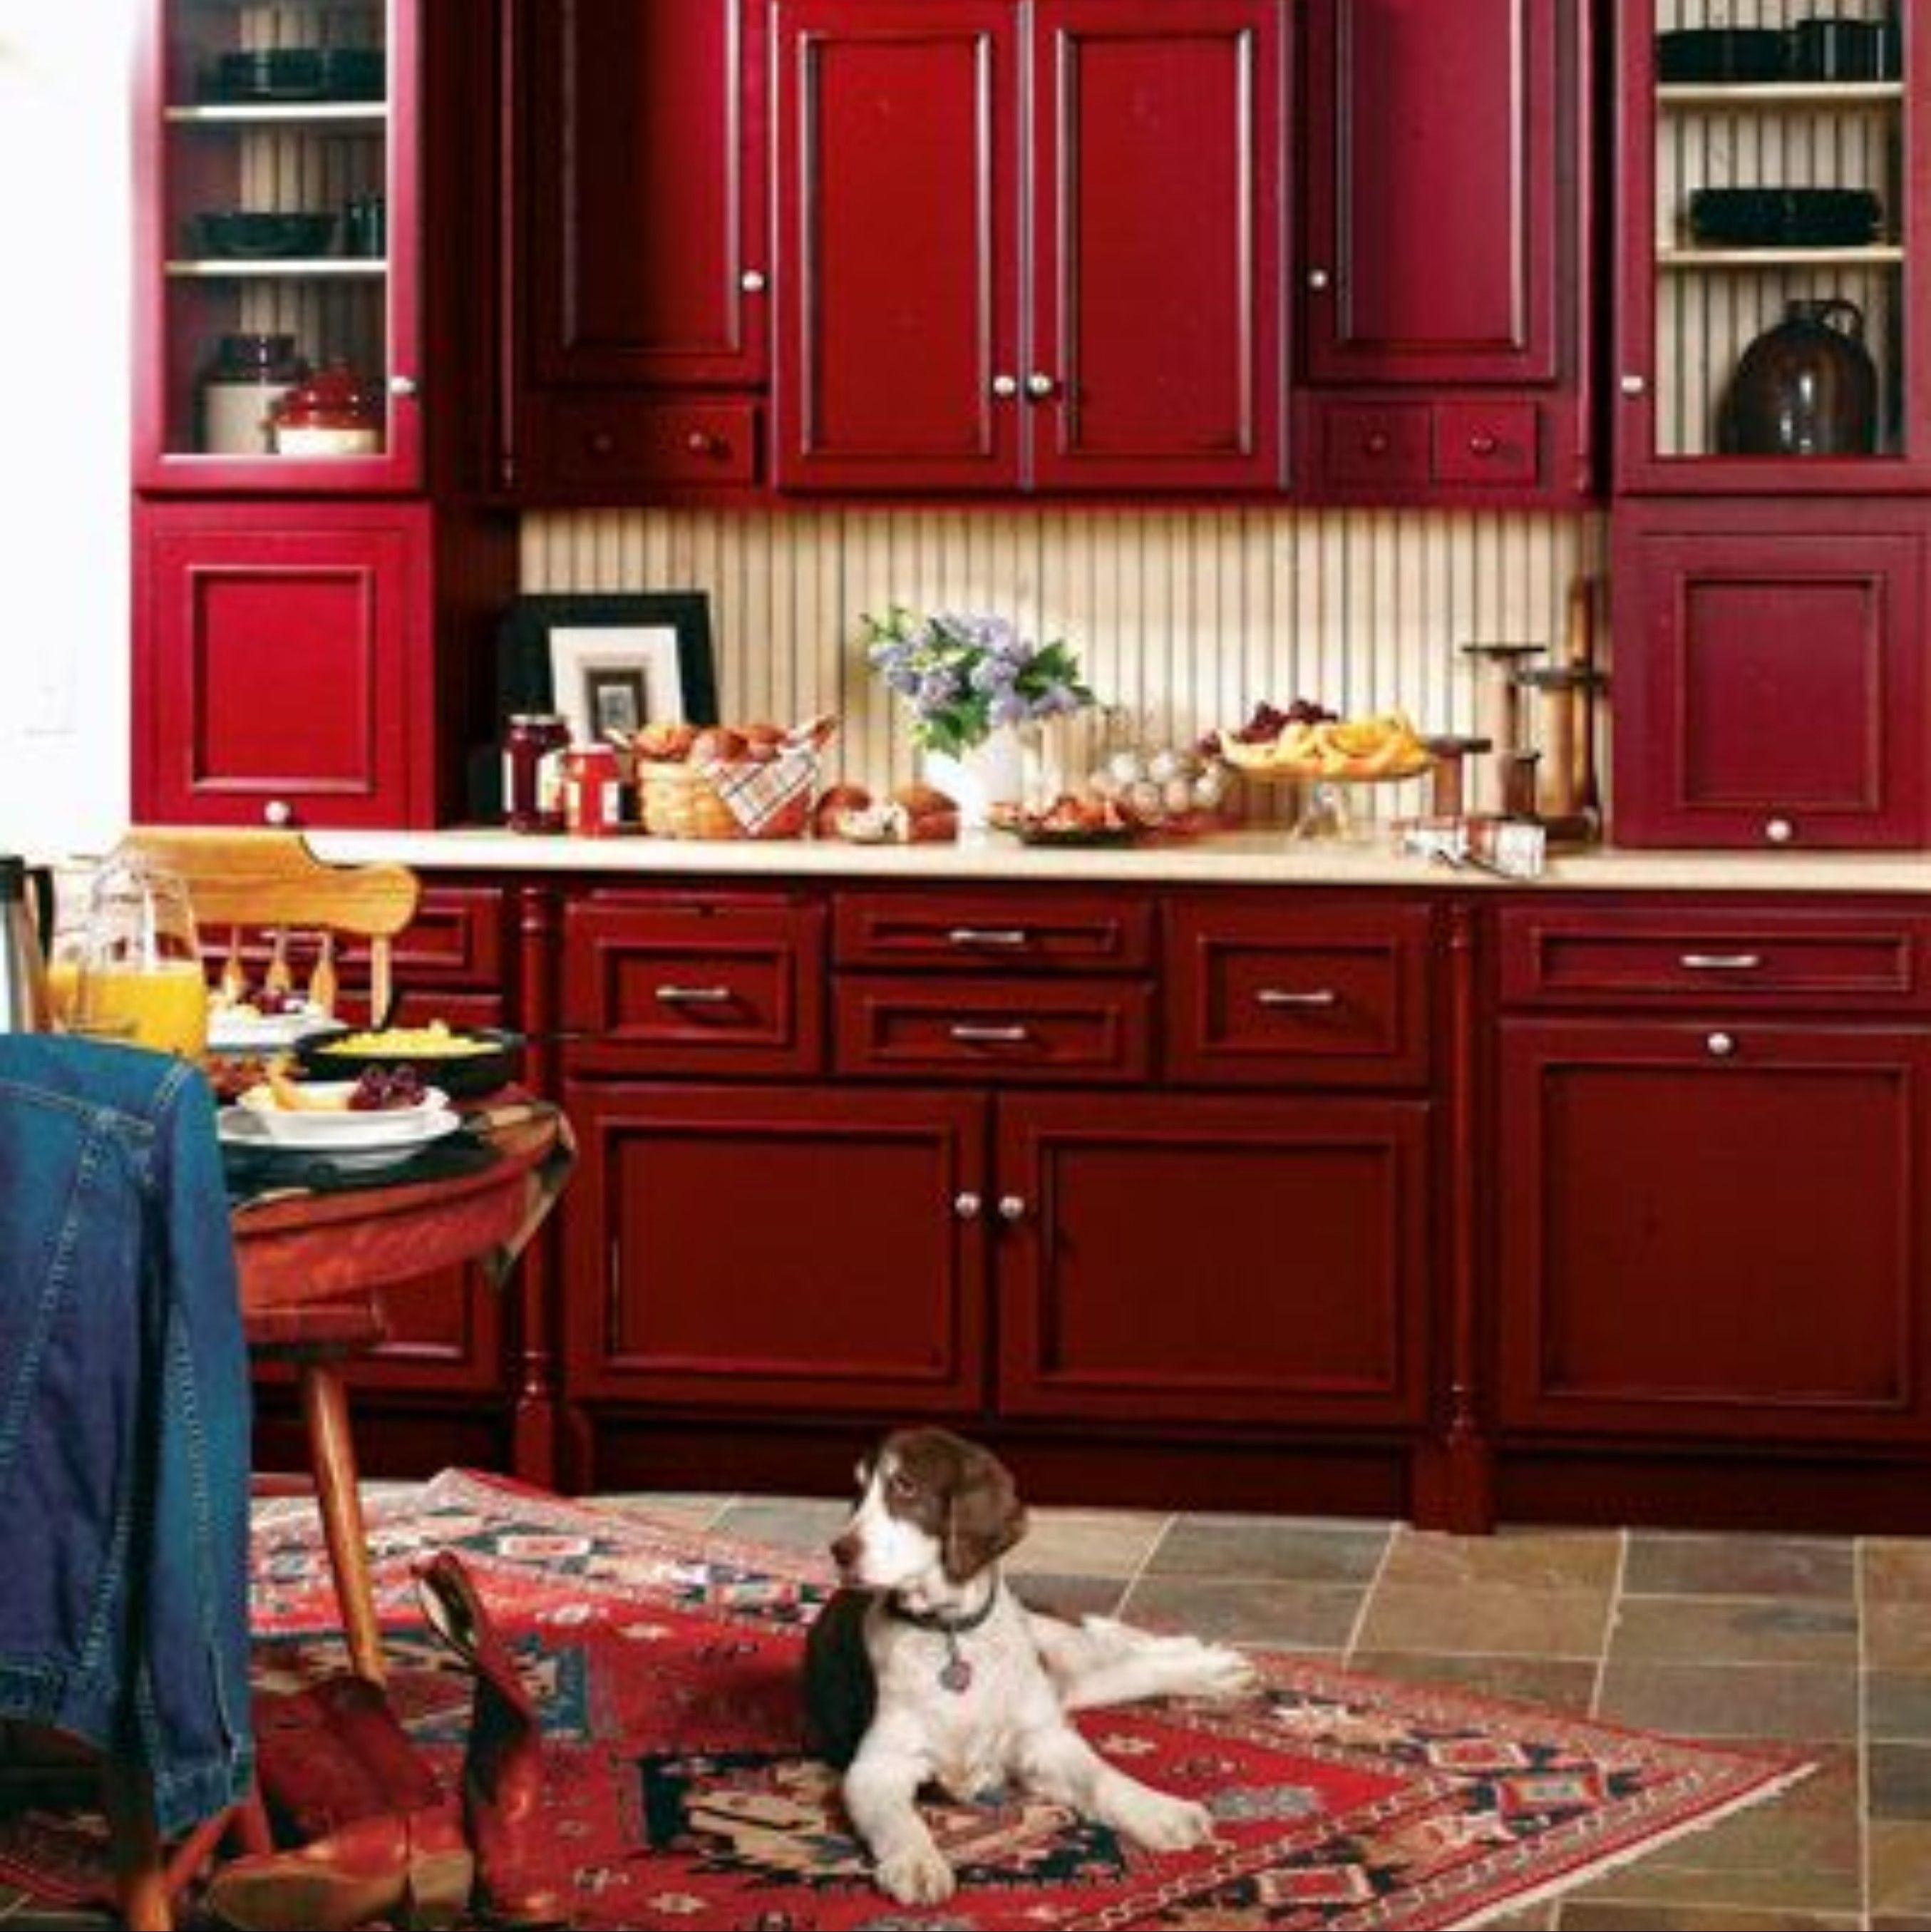 4 Rich Jewel Tones For A Gem Of A Kitchen Red Kitchen Cabinets Red Kitchen Red Cabinets